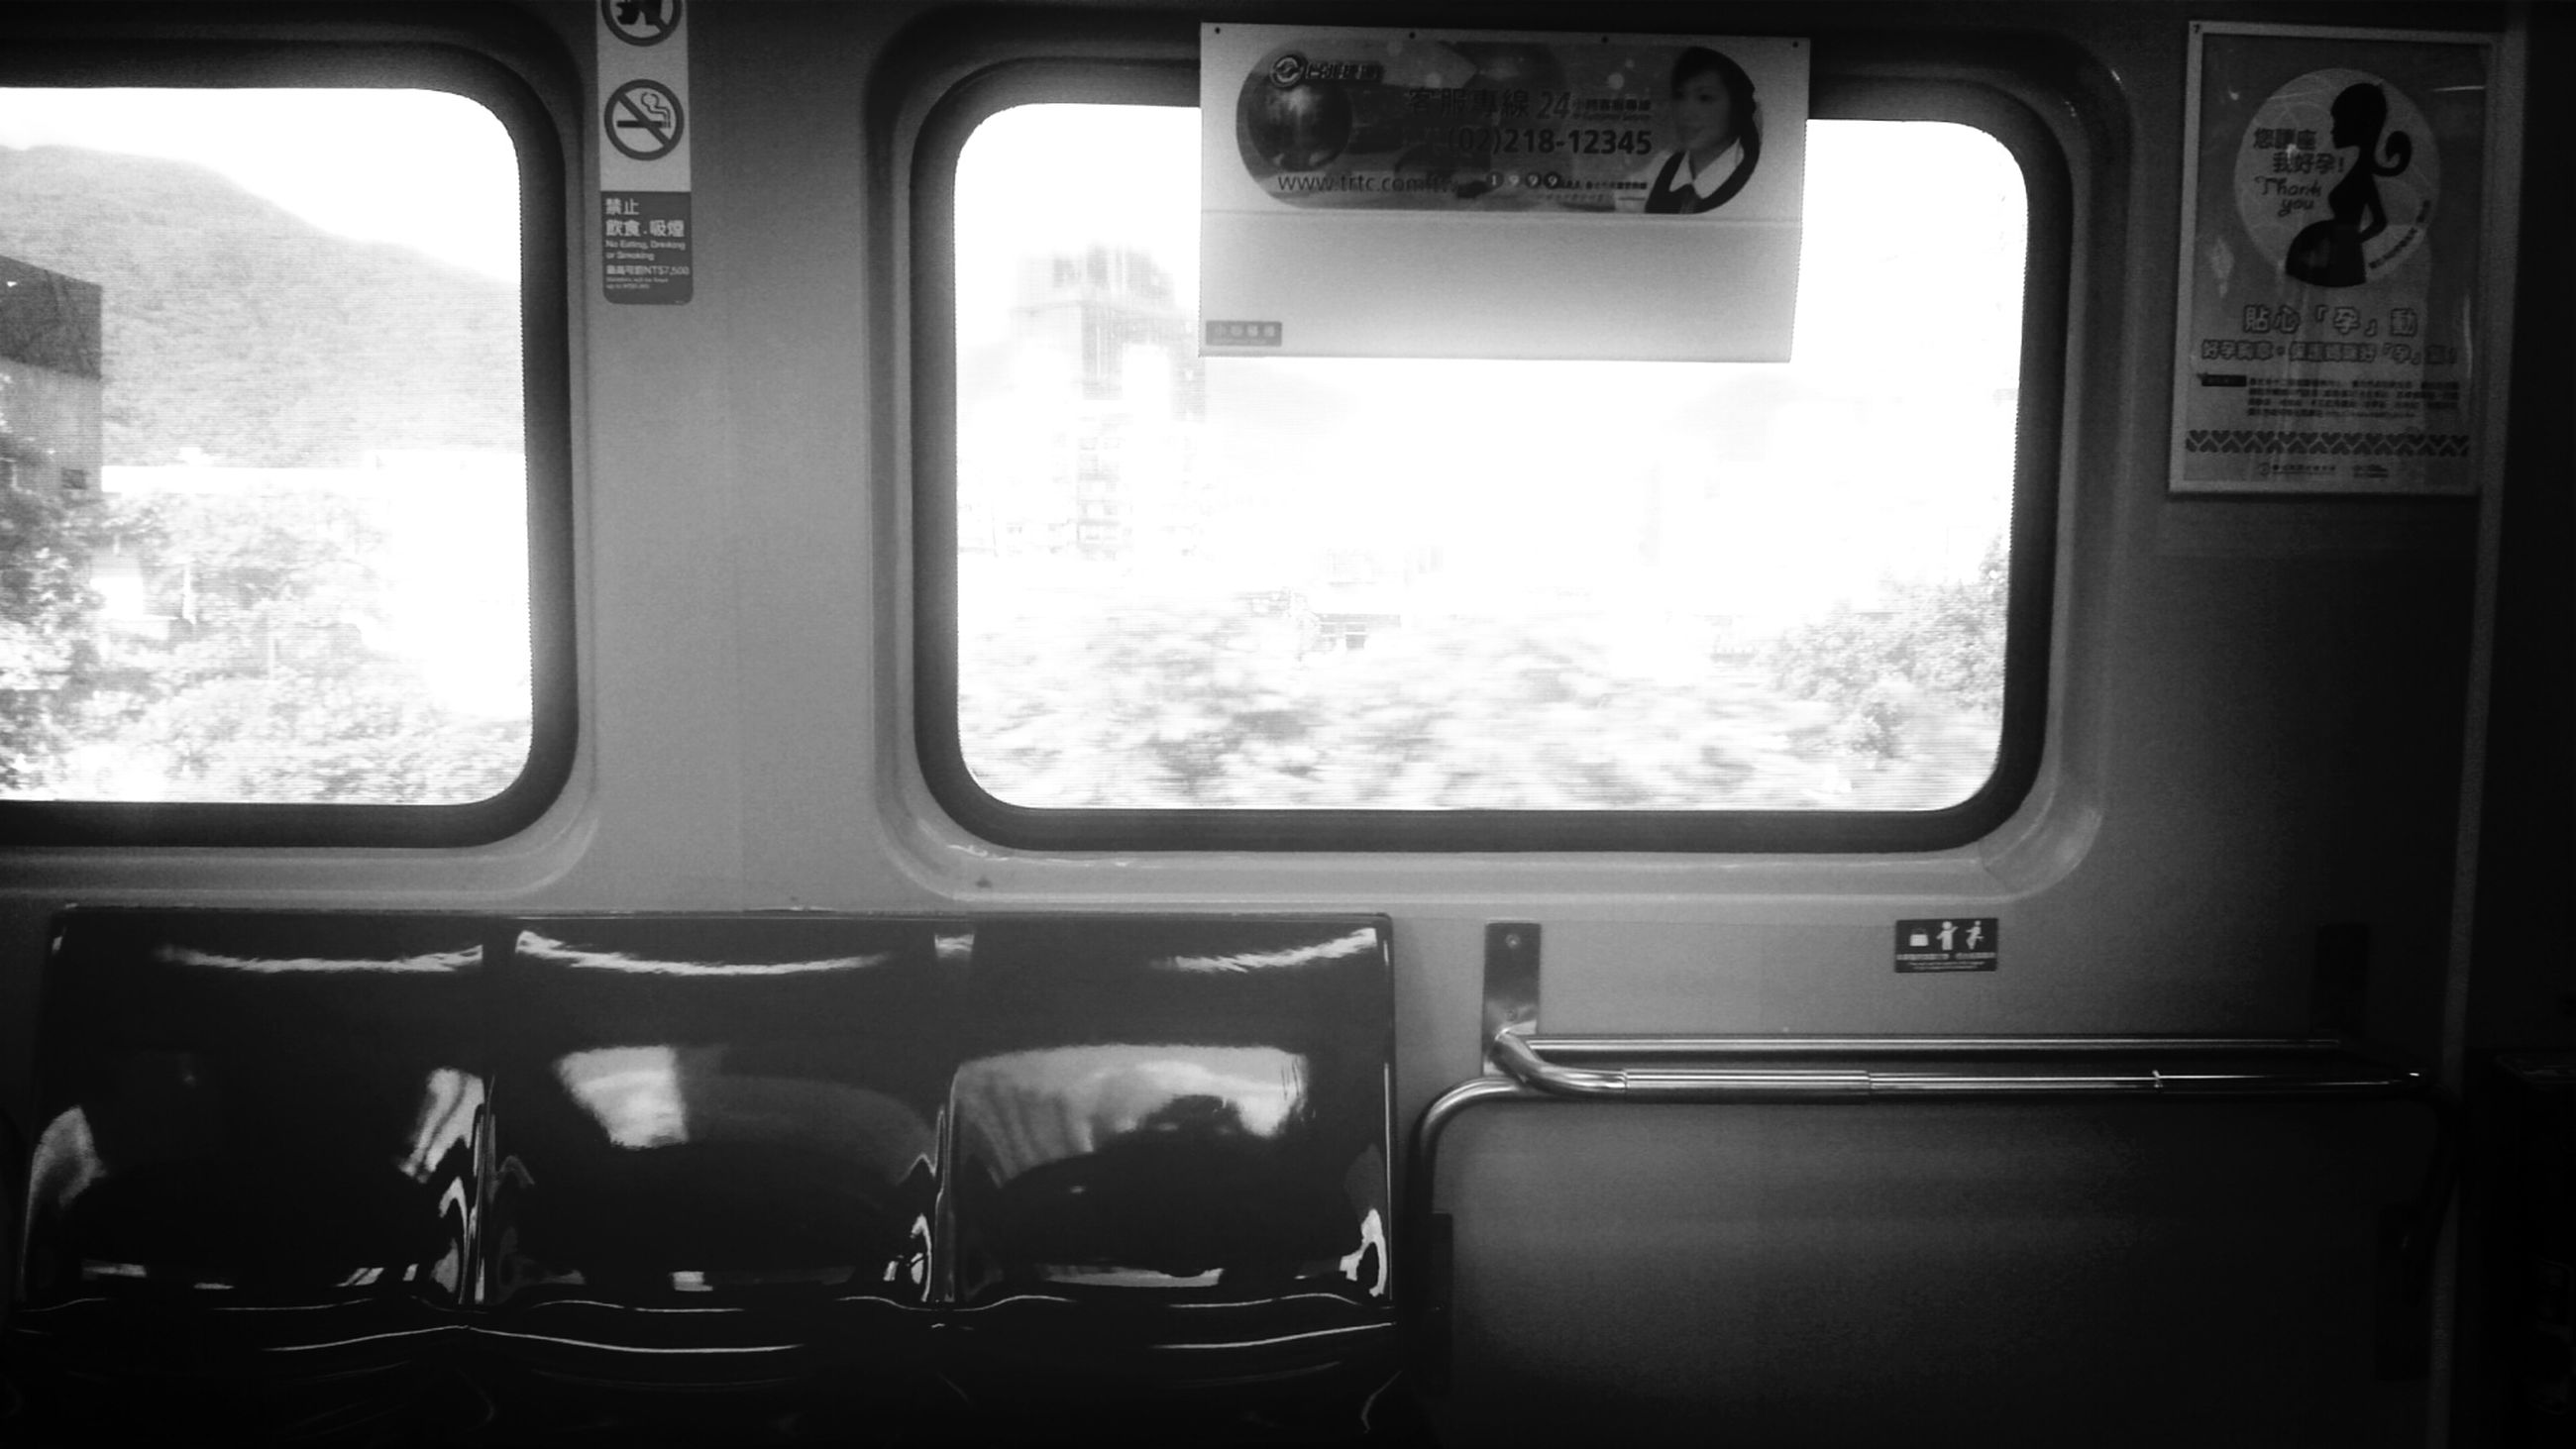 indoors, window, transportation, vehicle interior, mode of transport, glass - material, car, transparent, land vehicle, seat, public transportation, vehicle seat, absence, empty, chair, travel, train - vehicle, no people, day, interior